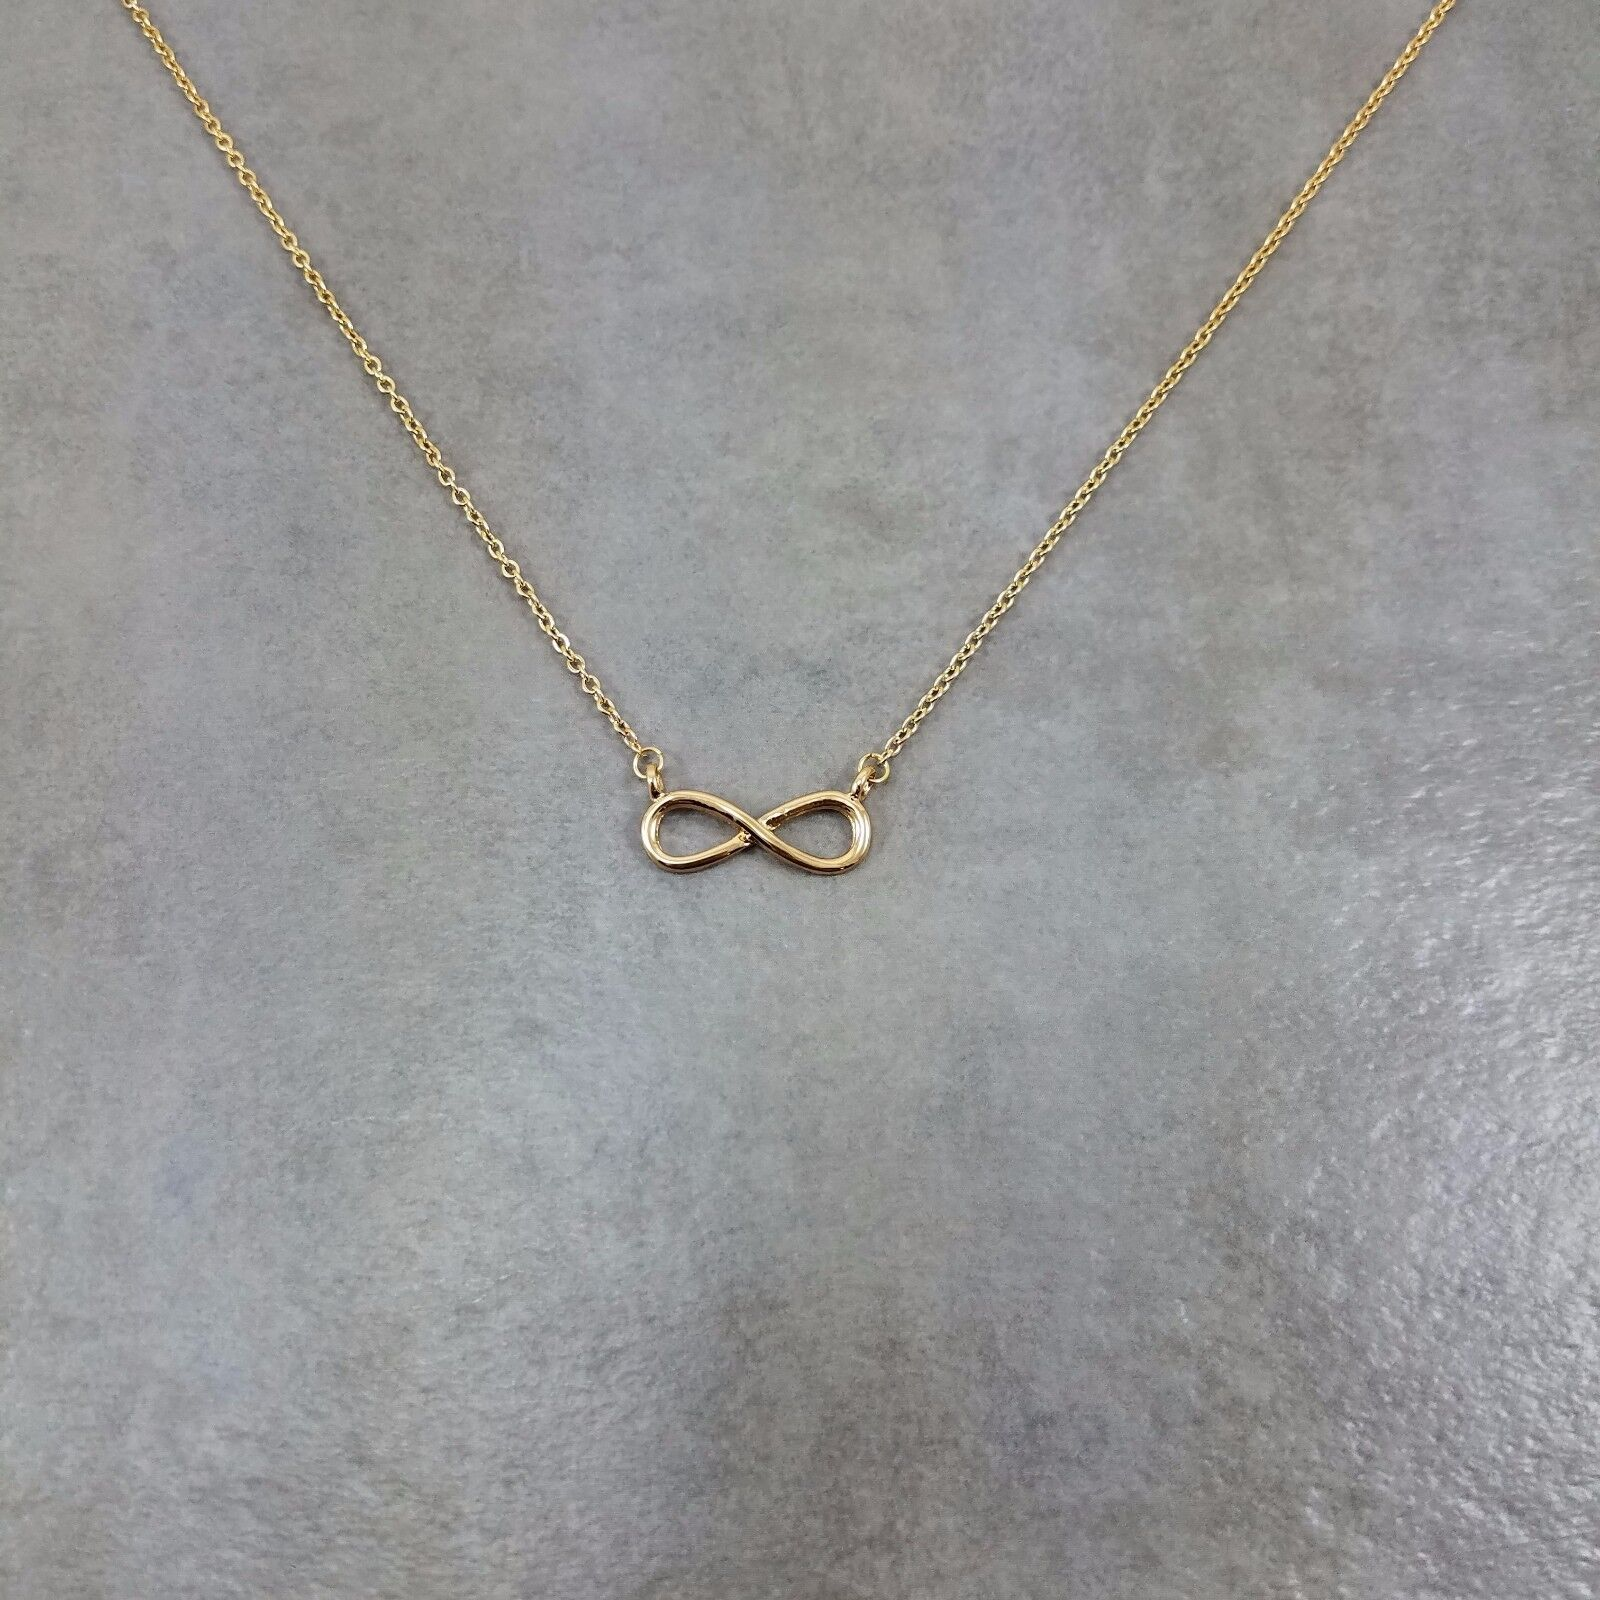 Infinity GOLD Plated Necklace Gift Limitless Forever Always